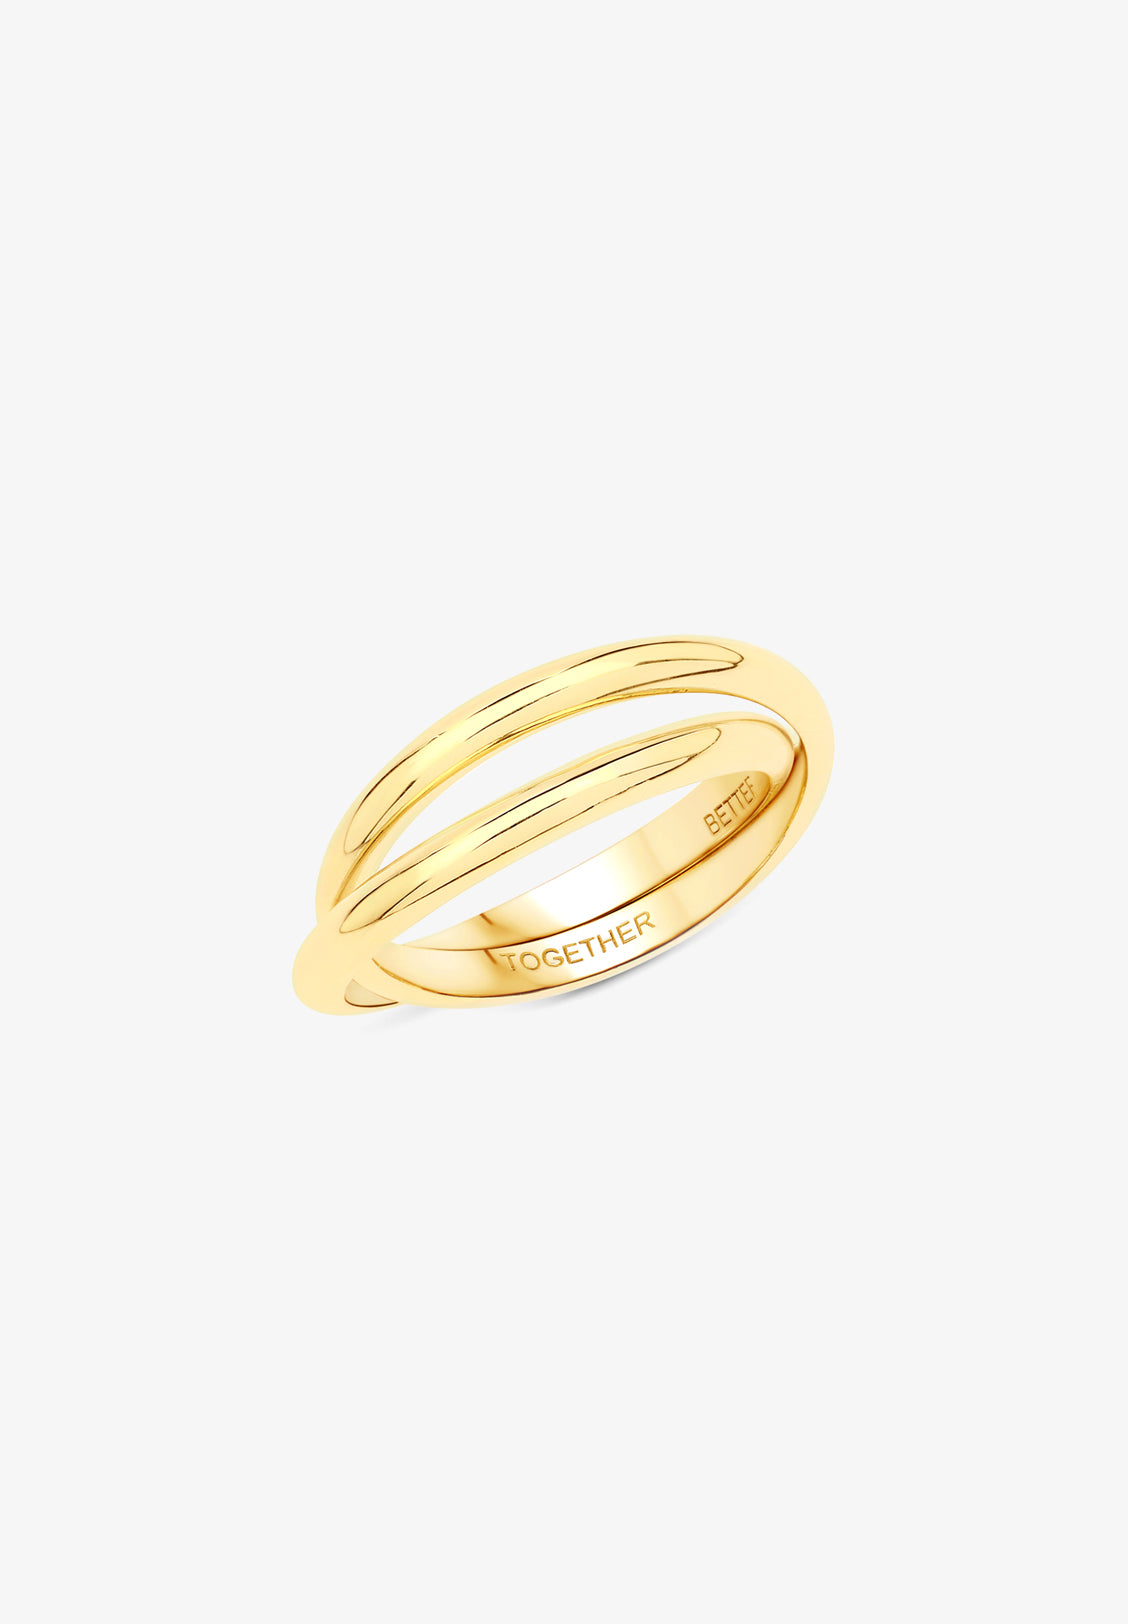 FLASH - BETTER TOGETHER RINGS, 14K GOLD VERMEIL